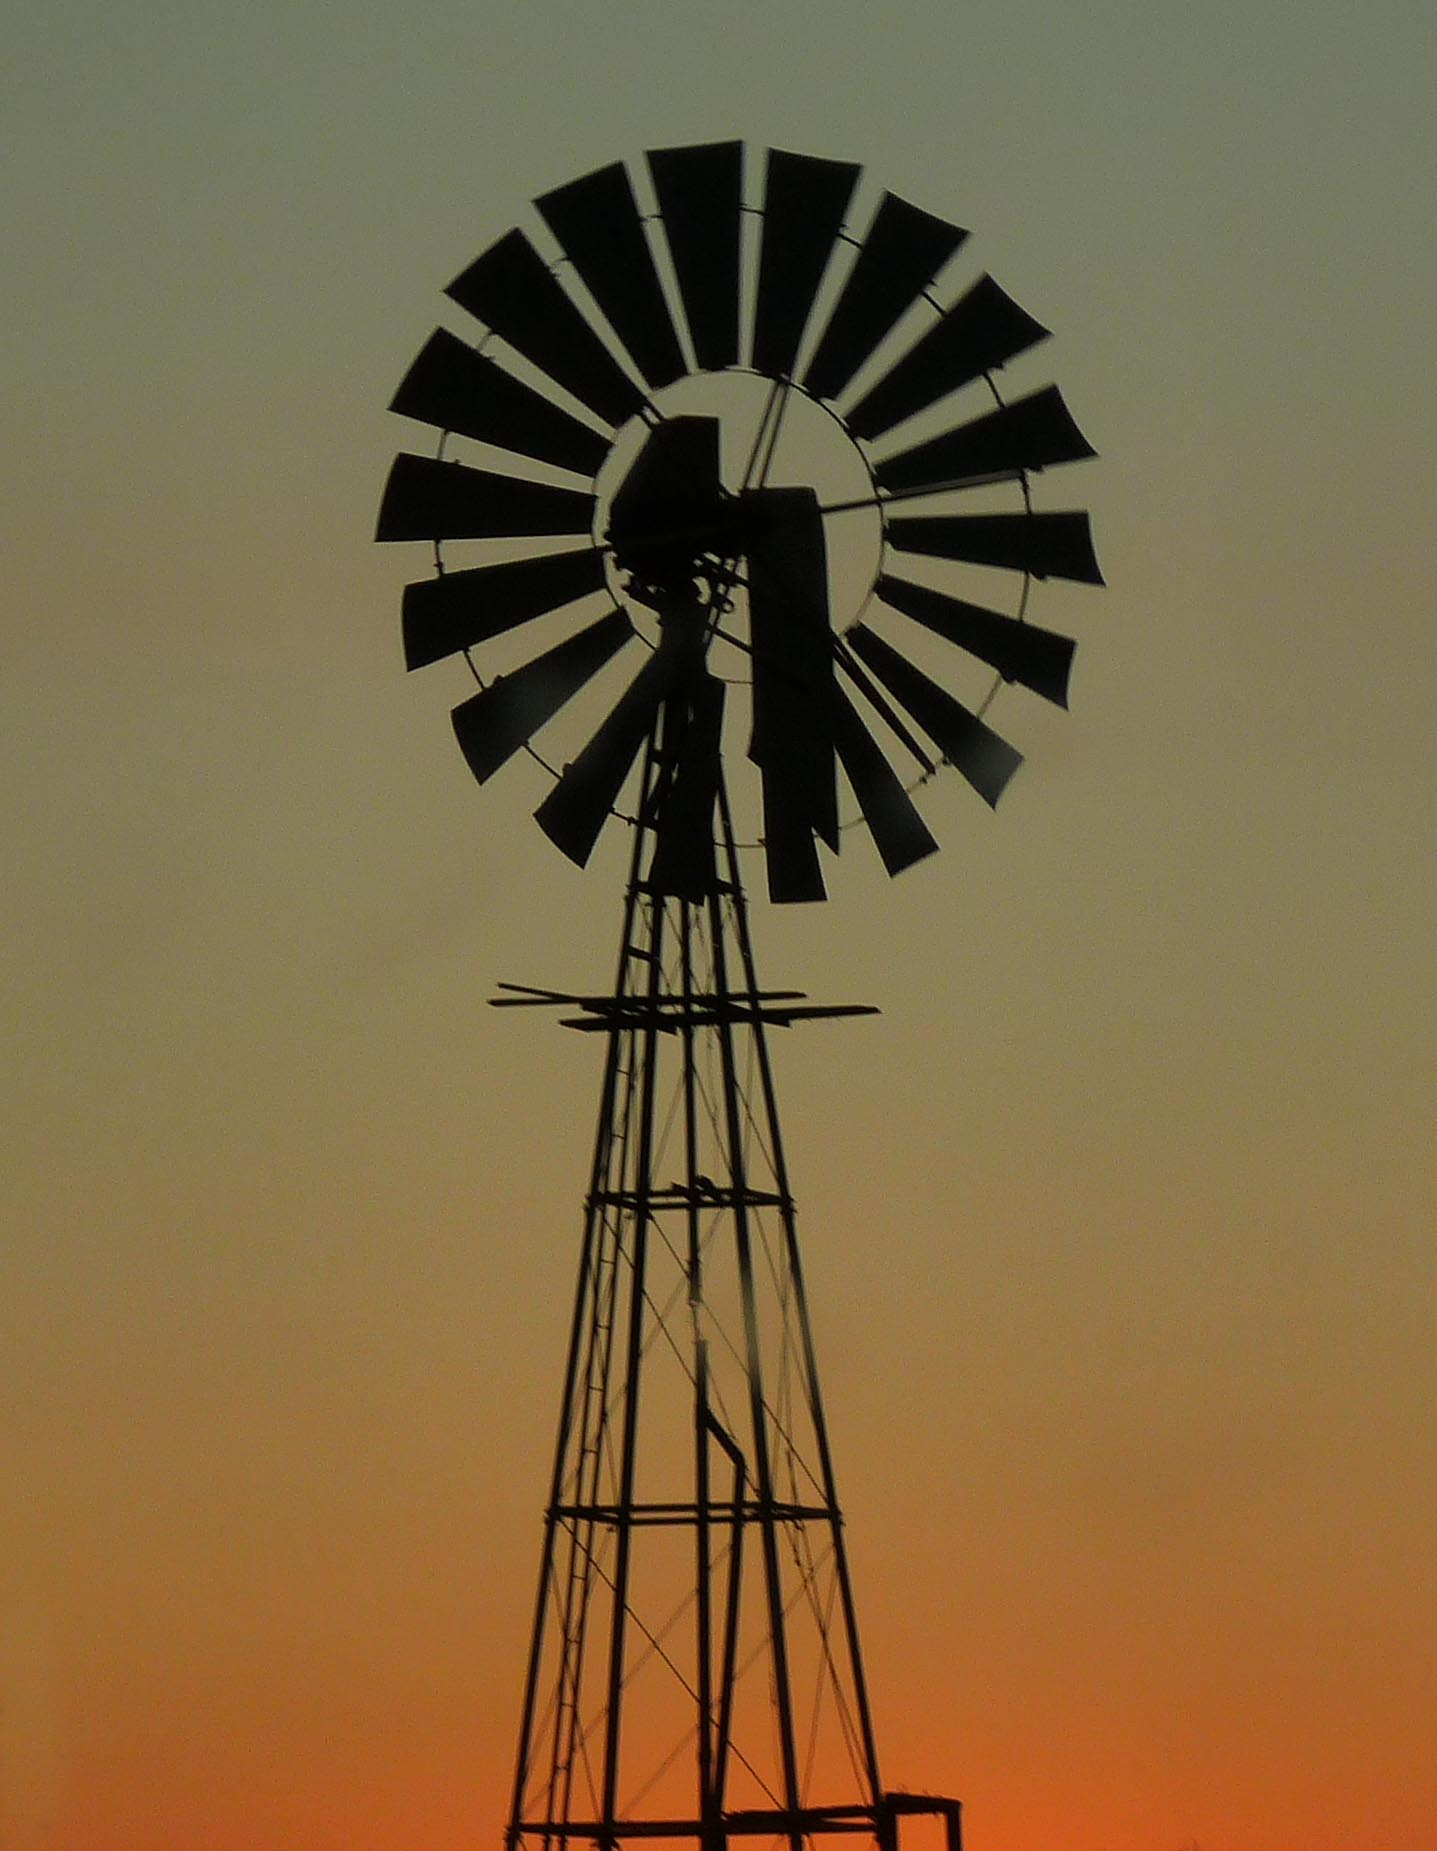 File:Wind pump 02 (3551193086).jpg - Wikimedia Commons